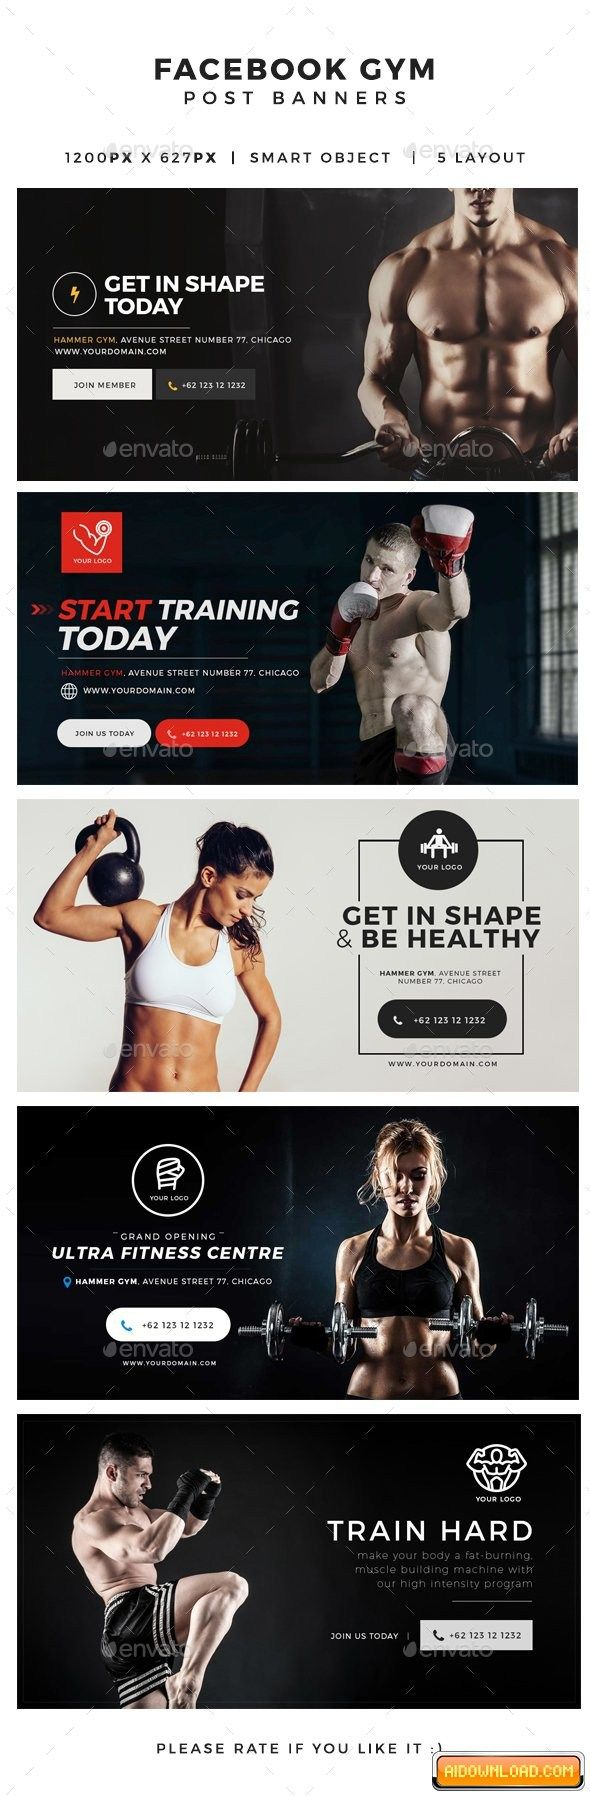 Gym & Fitness Facebook Post Banners Free Download | Free Graphic Templates, Fonts, Logos & Icons, PSD, AI